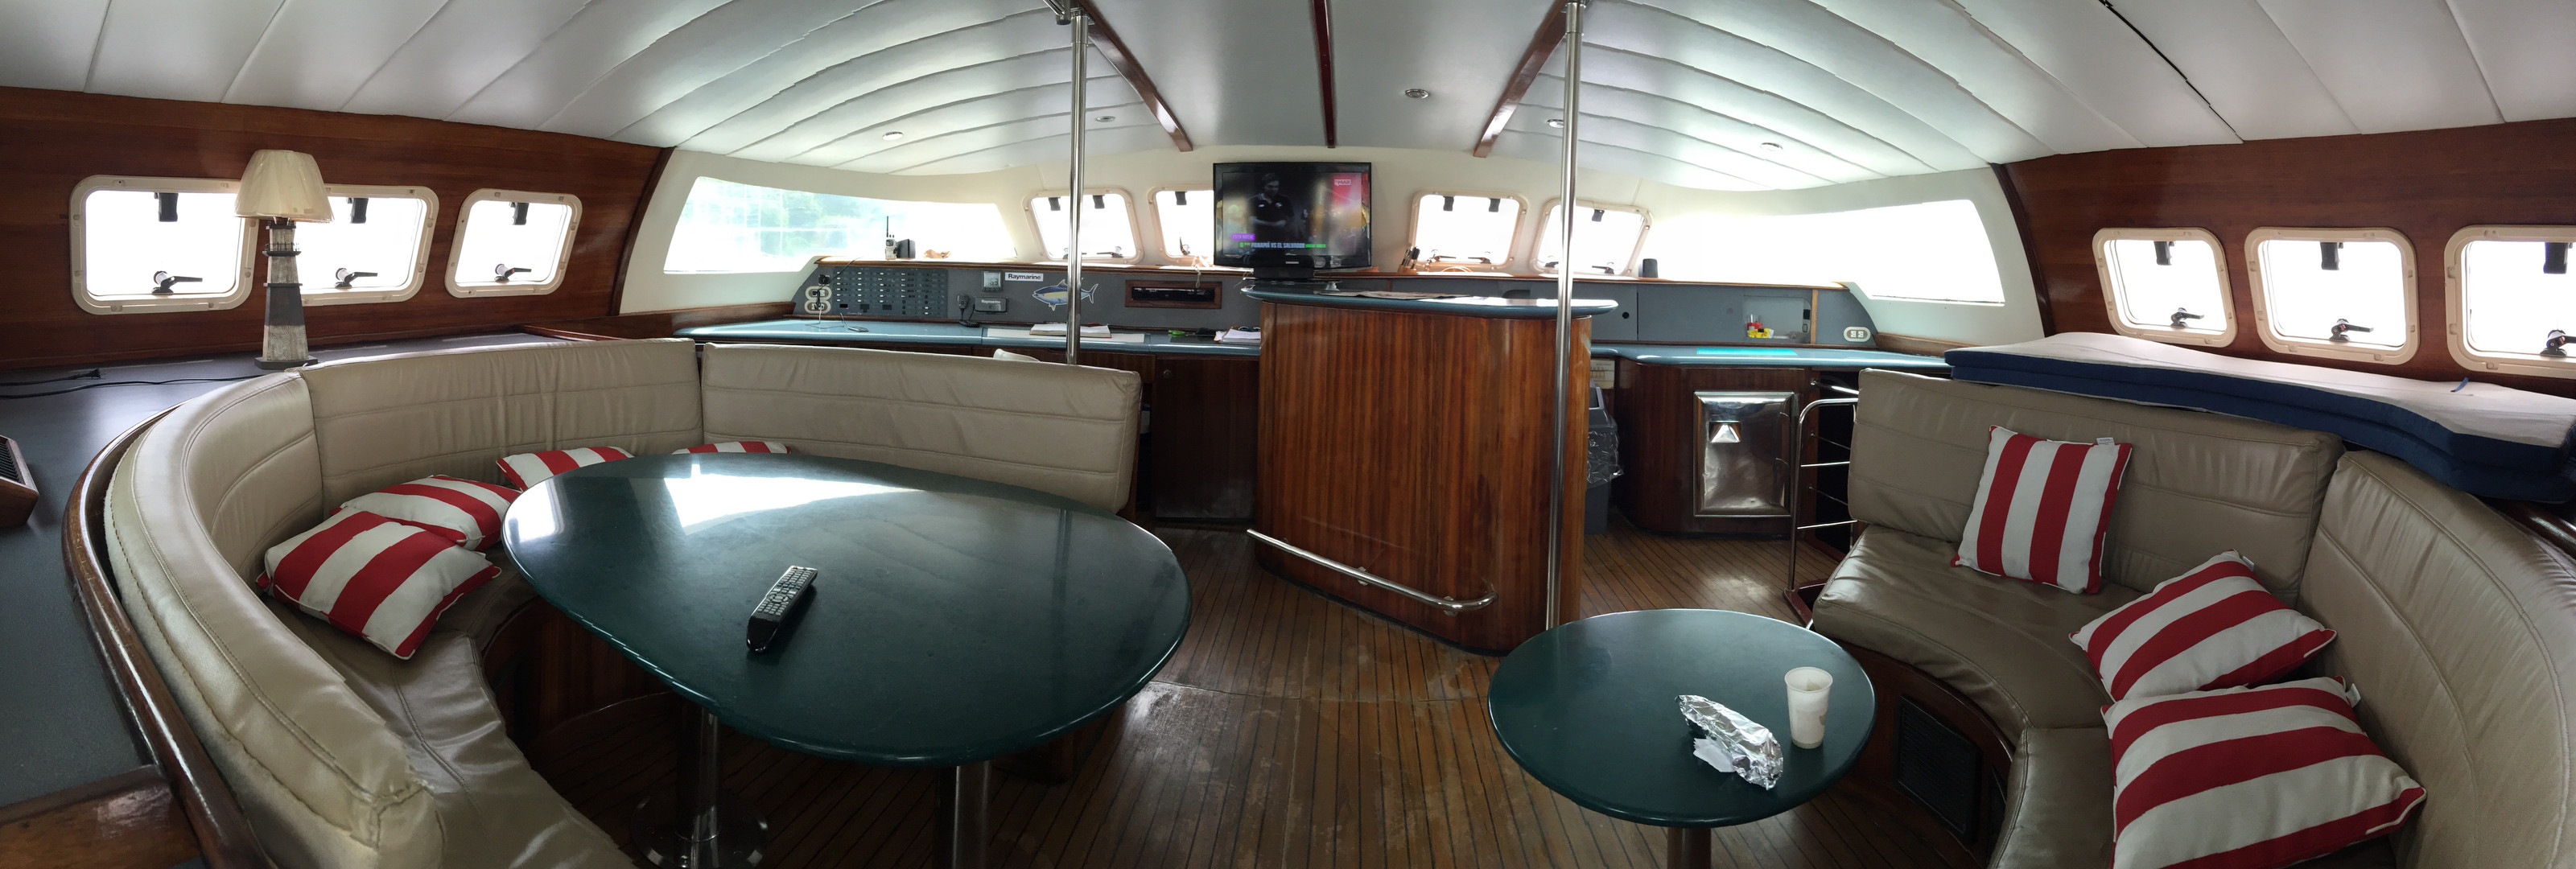 interior view of 57ft fountaine pajot catamaran rental in panama